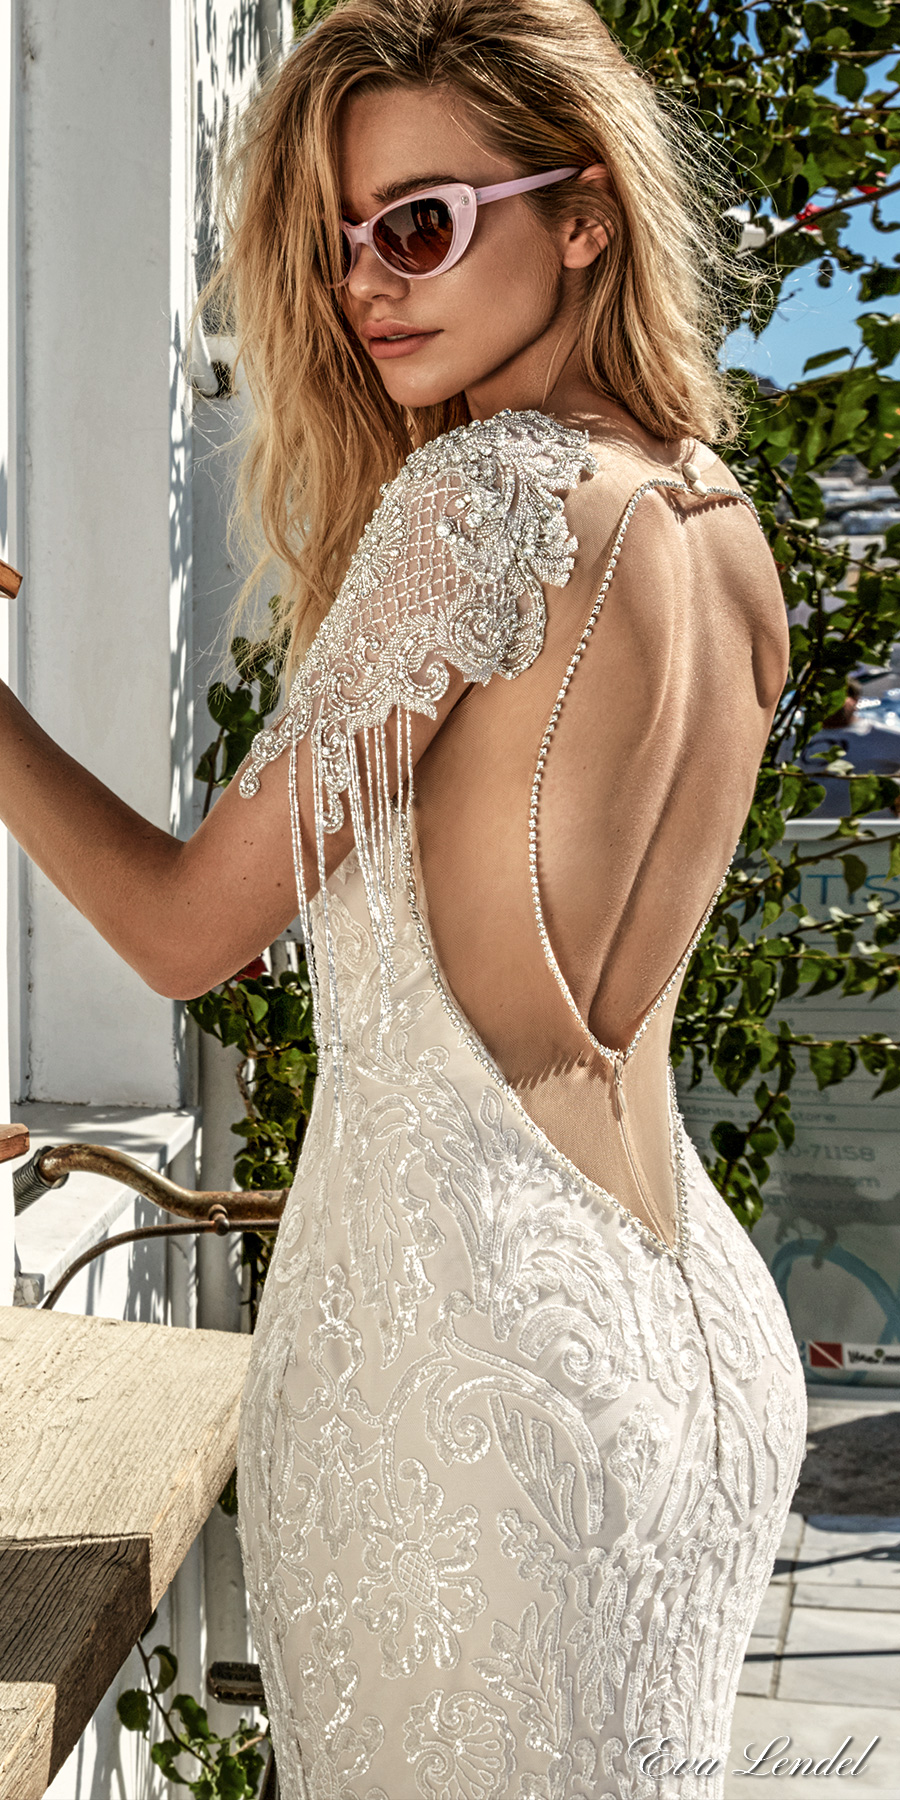 eva lendel 2017 bridal cape sleeves deep plunging sweetheart necklin full embellishment elegant sexy glamorous fit and flare sheath wedding dress keyhole back royal train (bler) zbv